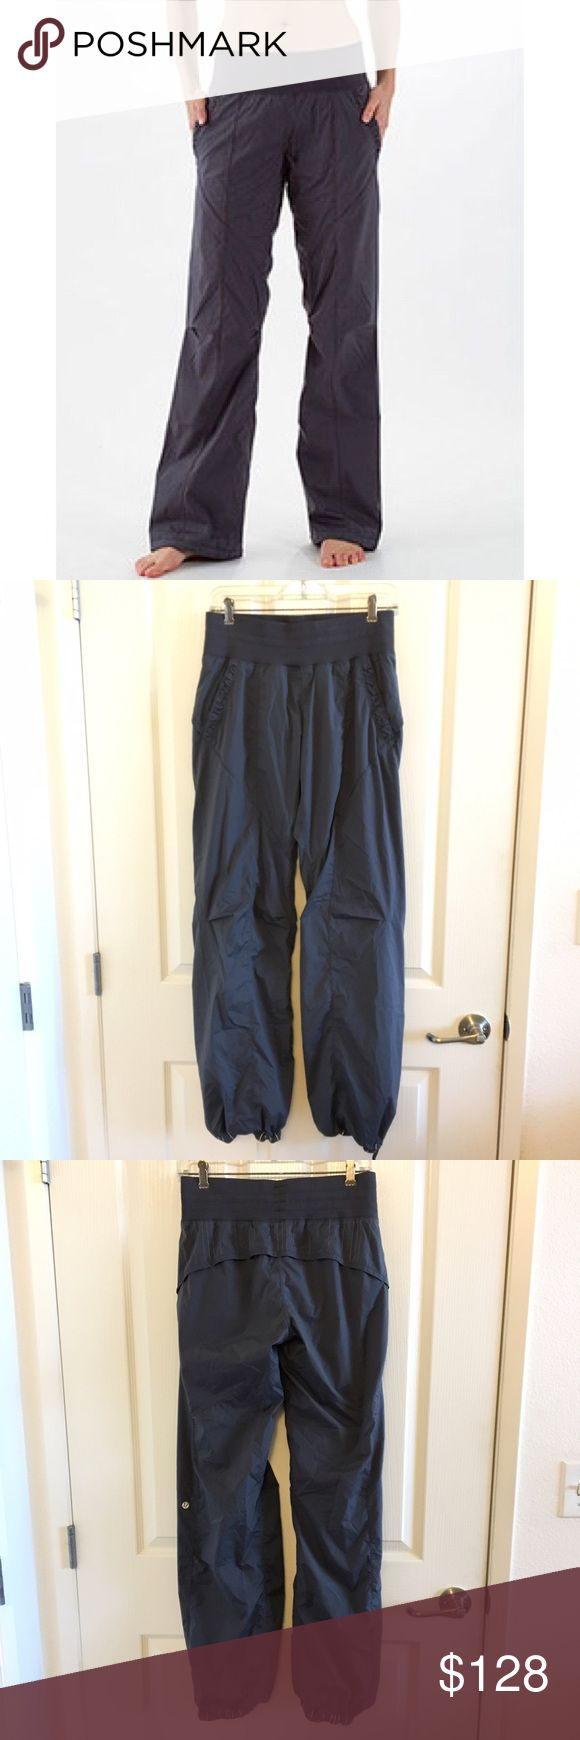 Final Price!! Lululemon hustle (dance studio) Lululemon hustle pants size 6 in coal (very similar to dance studio pants but slightly room here) bottom reflective drawstrings, reflective stripes along lower back, pockets) these pants are also lined on the inside somewhere to the lined dance your pants. Super comfortable! lululemon athletica Pants